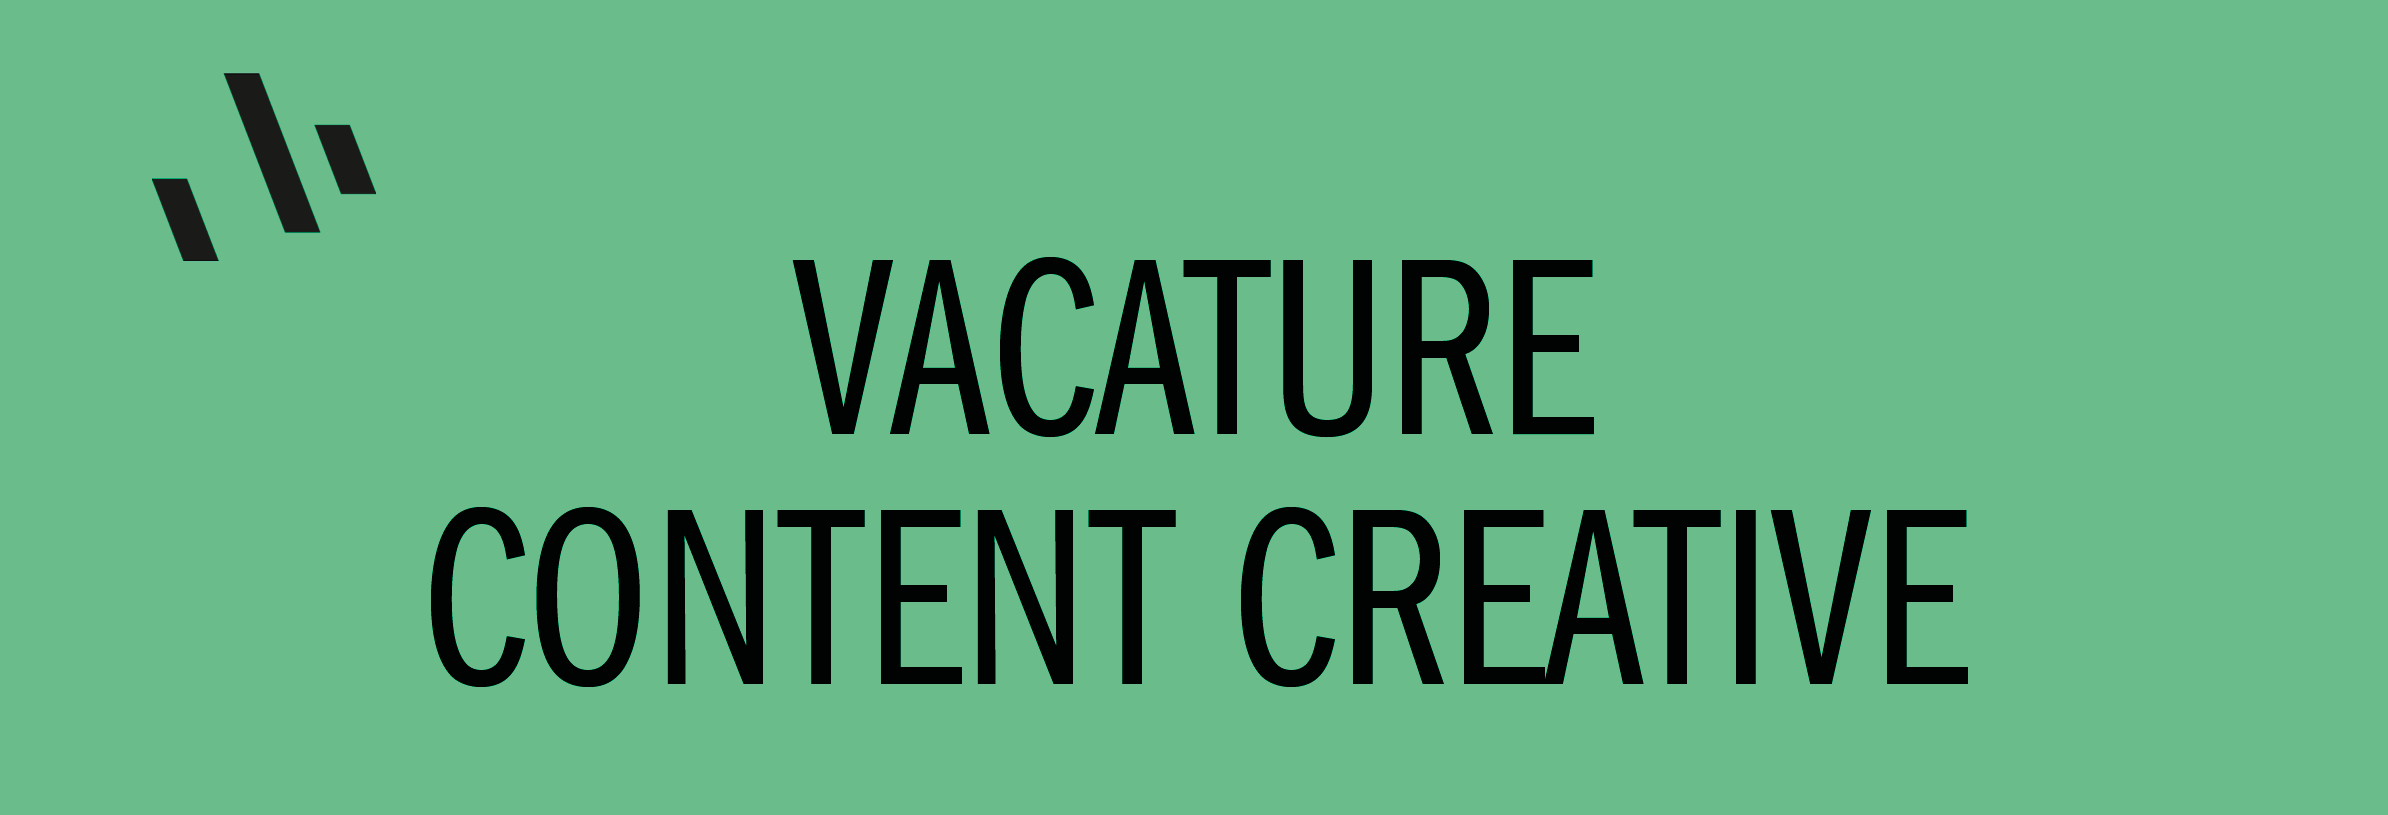 vacature concent creative